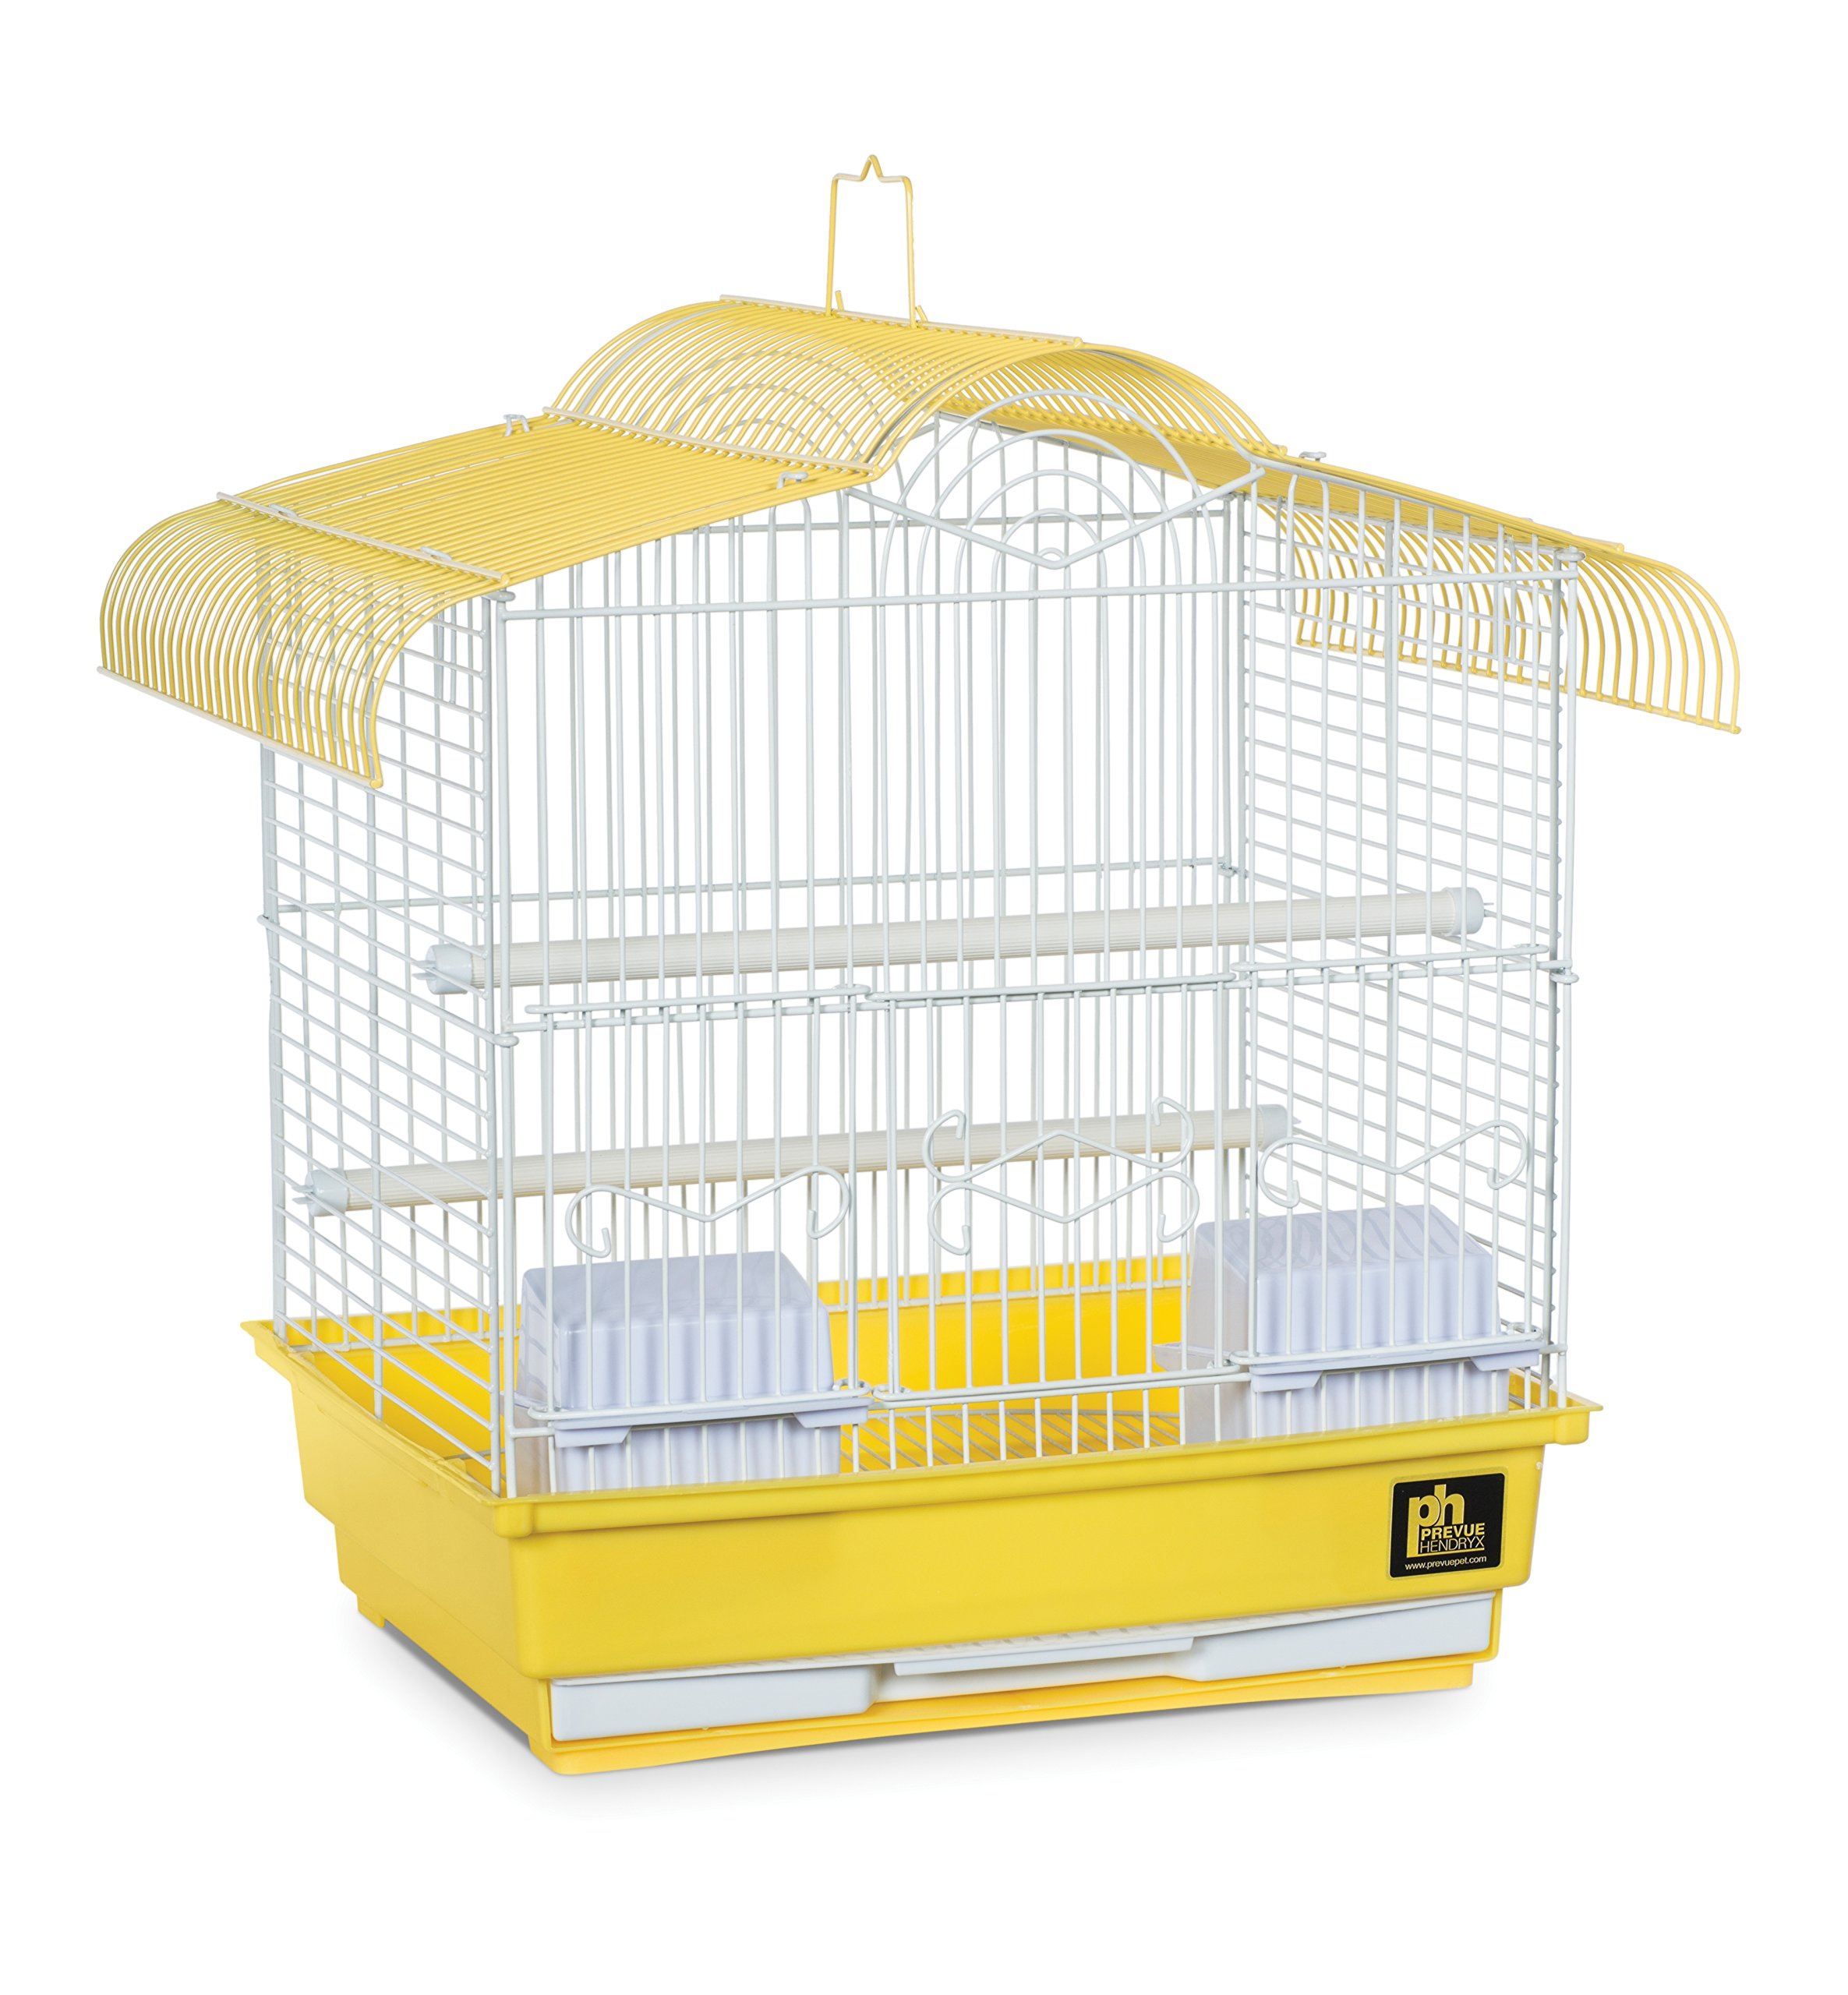 Prevue Pet Products SP50031 Bird Cage, Small, Yellow by Prevue Pet Products